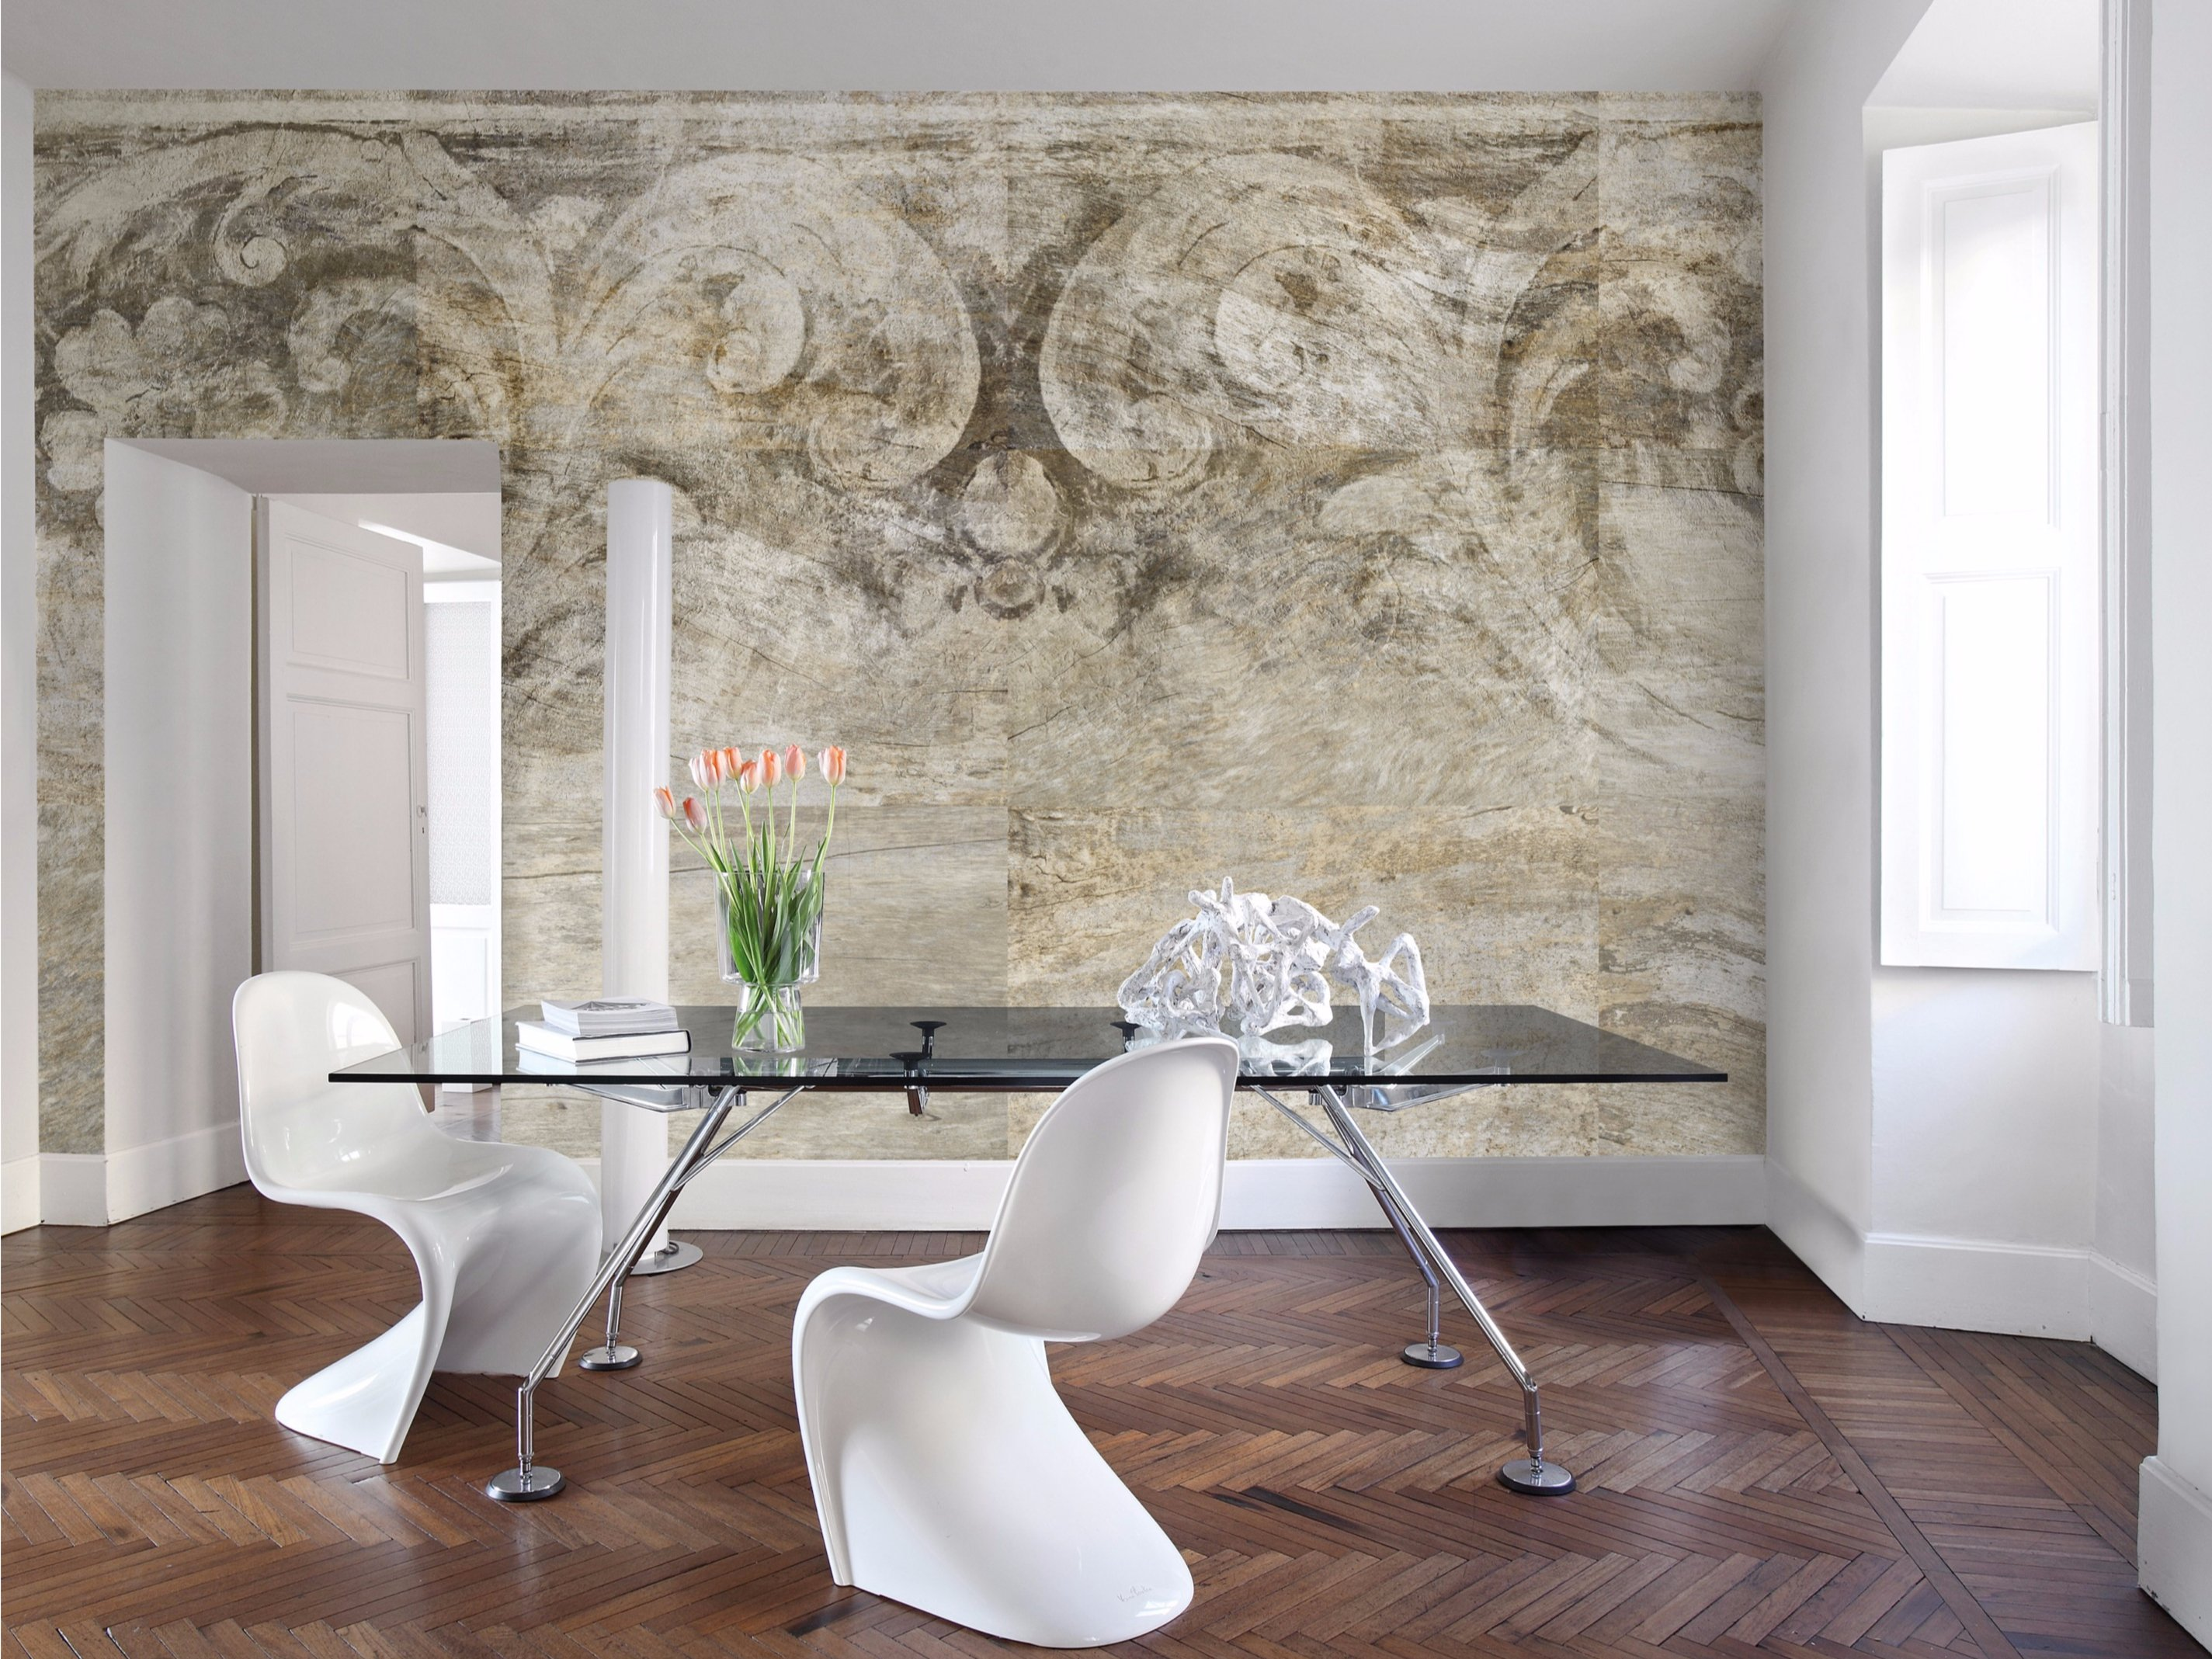 Design wallpaper neo classic designers collection by - Carte da parati di design ...